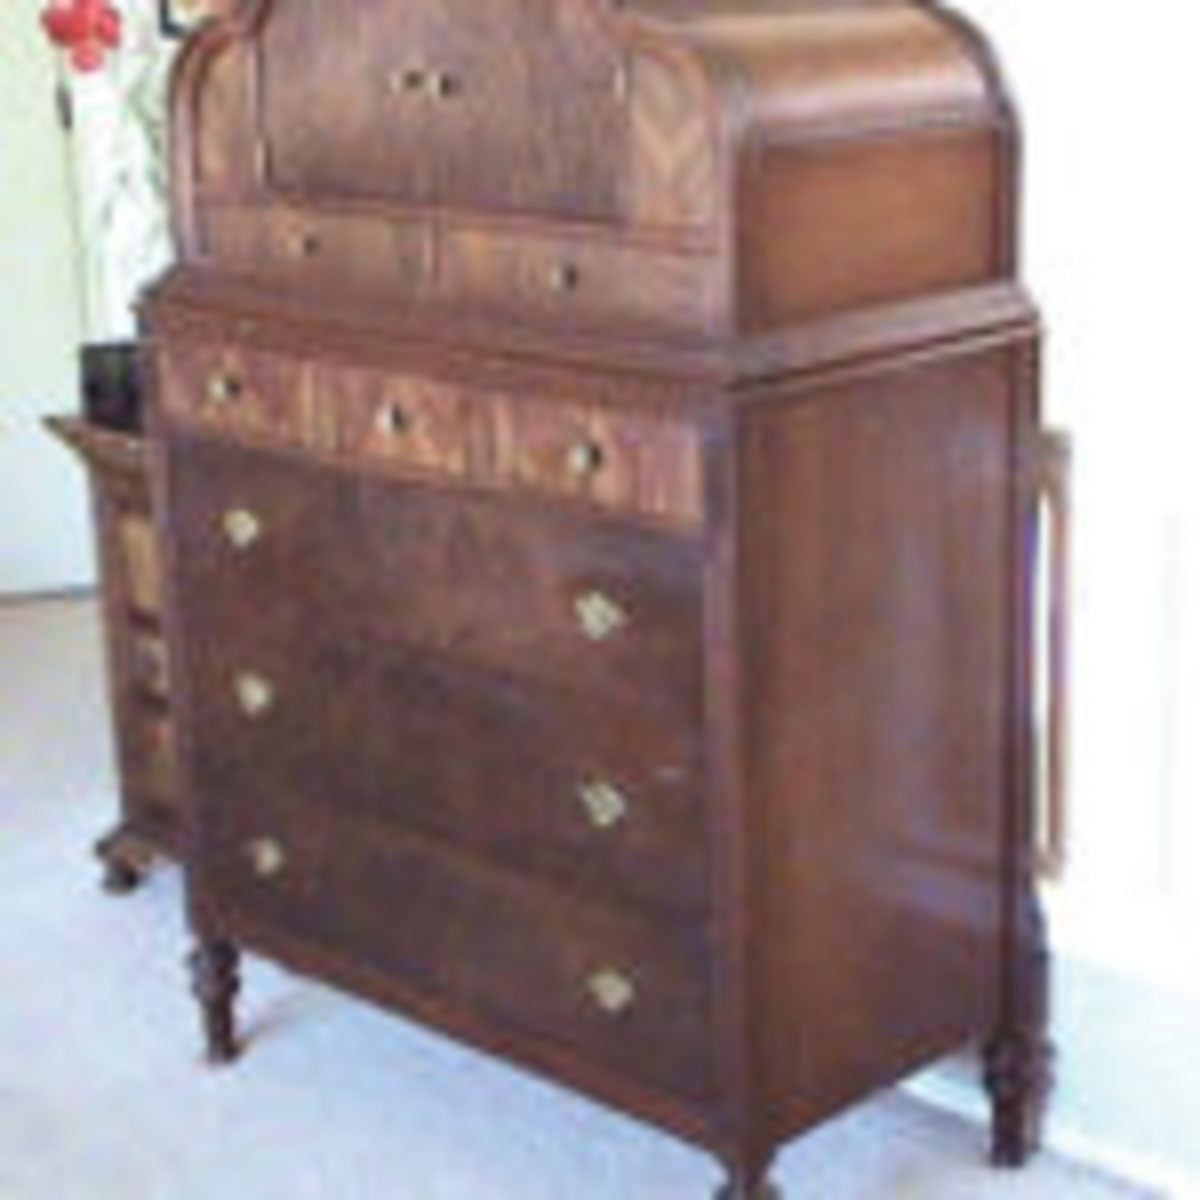 A final step in the evolution of the chiffonier was the chifforette with the placement of the doors on top of a chest that opened to reveal sliding trays similar to those of a linen press.